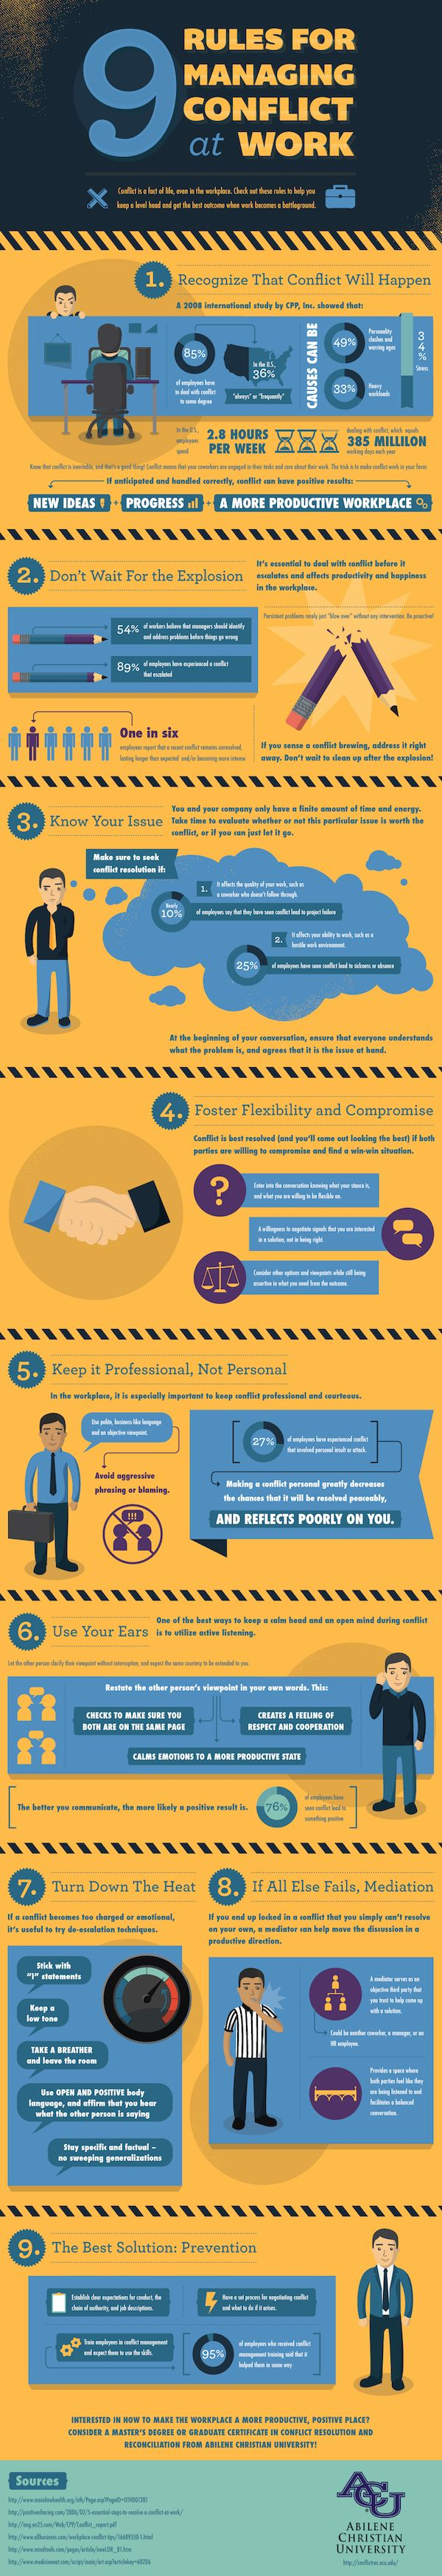 This infographic by Abilene Christian University gives you the best tips for when an argument starts at your workplace – and how to stay calm.    Takeaways:  Don't wait for the explosion – deal with conflict at the earliest chance.   Make sure you foster flexibility and compromise.   The best solution is prevention.